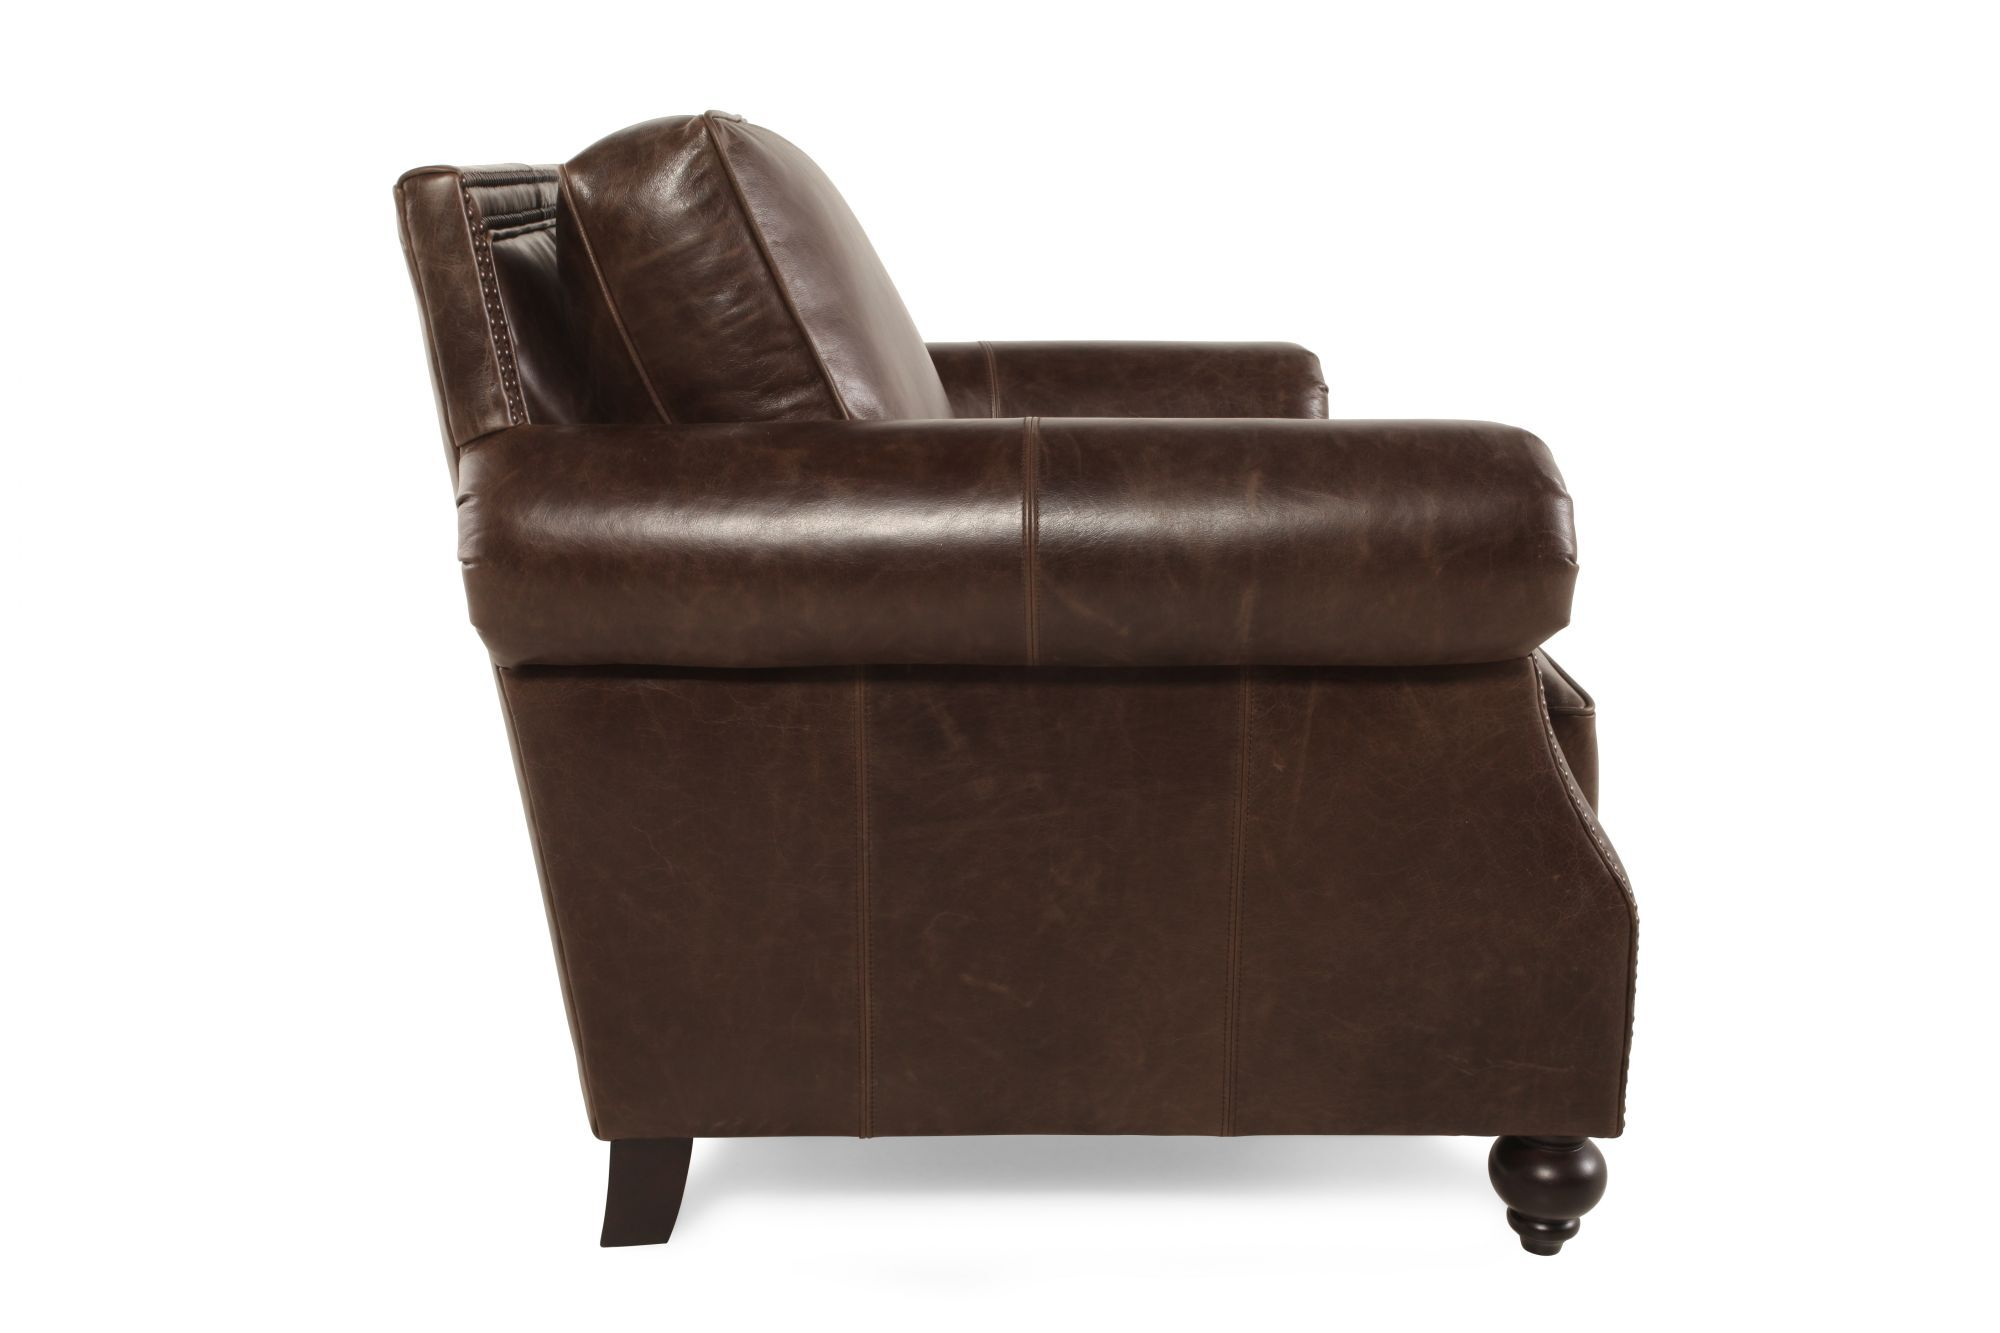 bernhardt upholstery brae sofa crate and barrel lounge sectional leather chair mathis brothers furniture